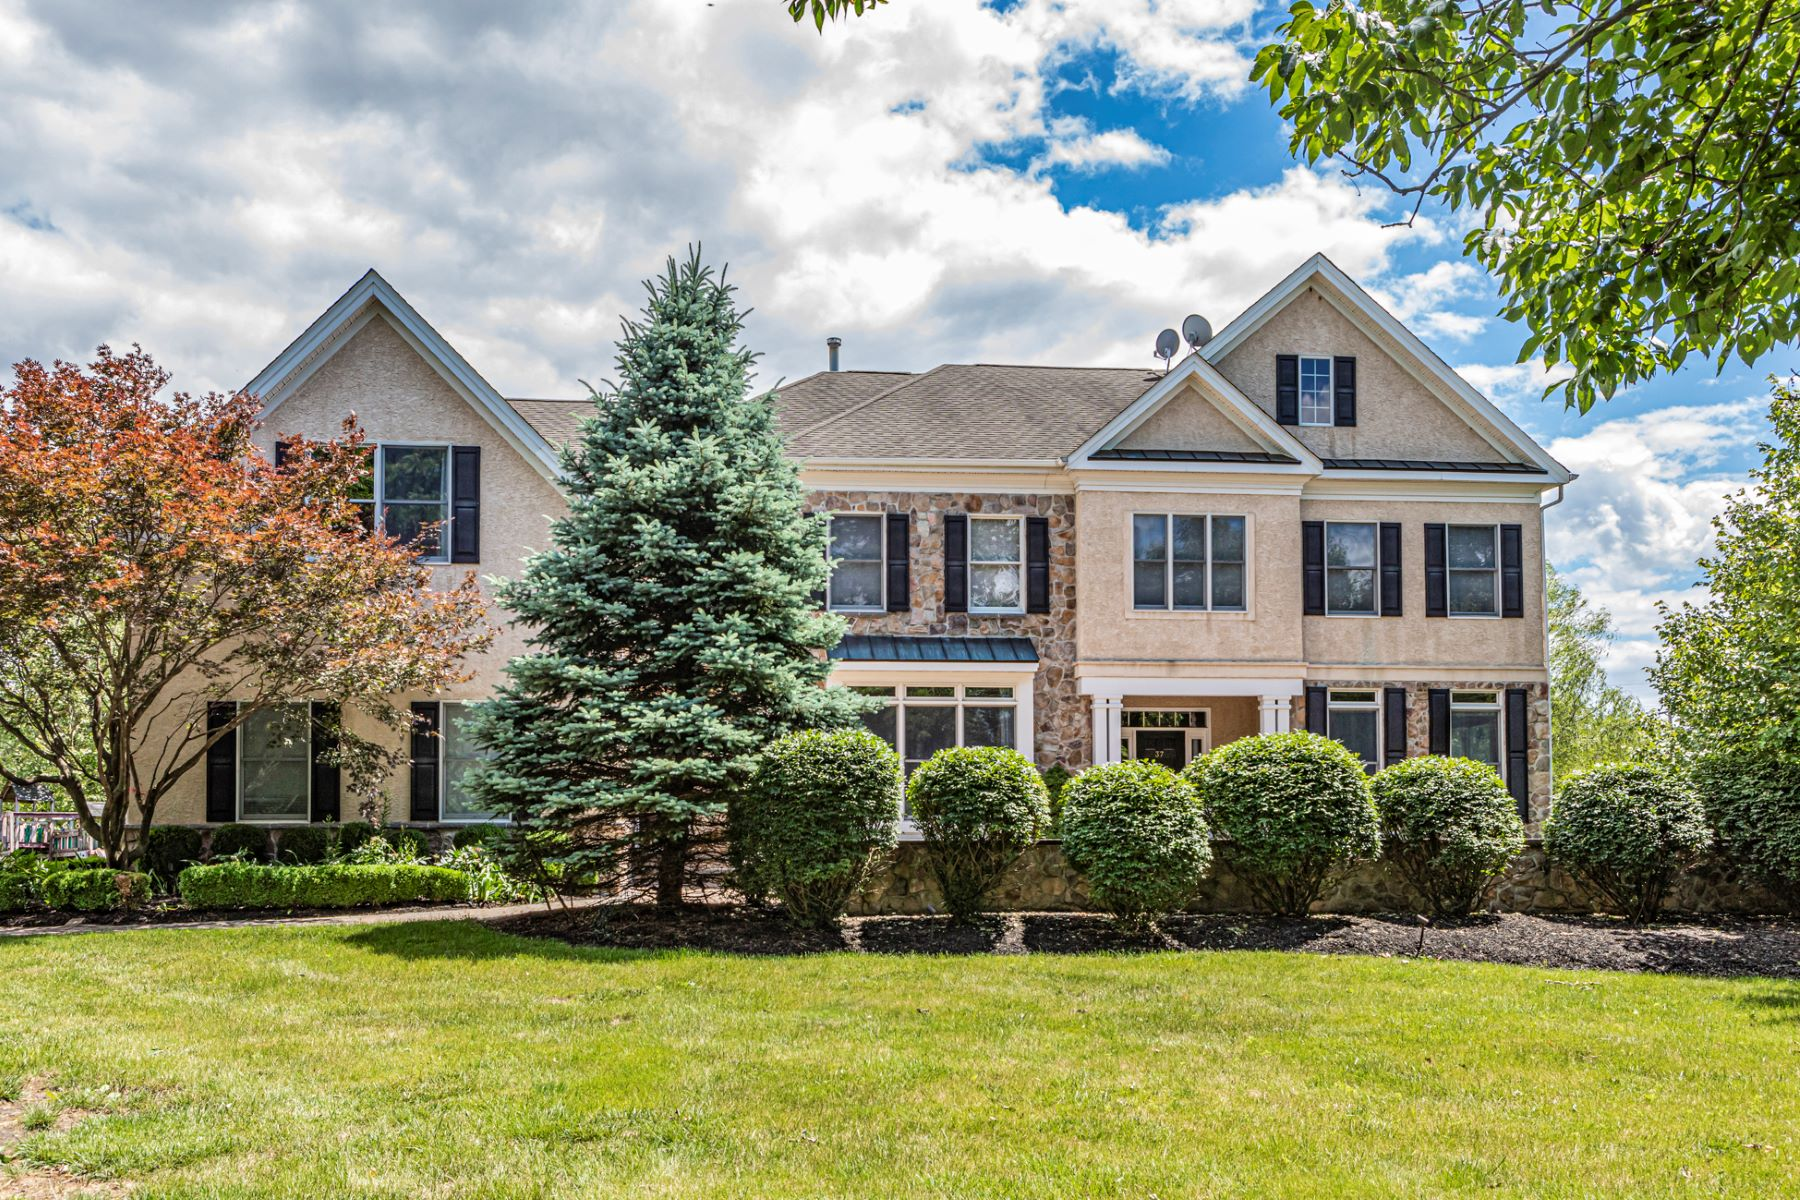 Single Family Homes للـ Sale في Gracious and Spacious In A Beloved Neighborhood 37 Van Zandt Road, Skillman, New Jersey 08558 United States